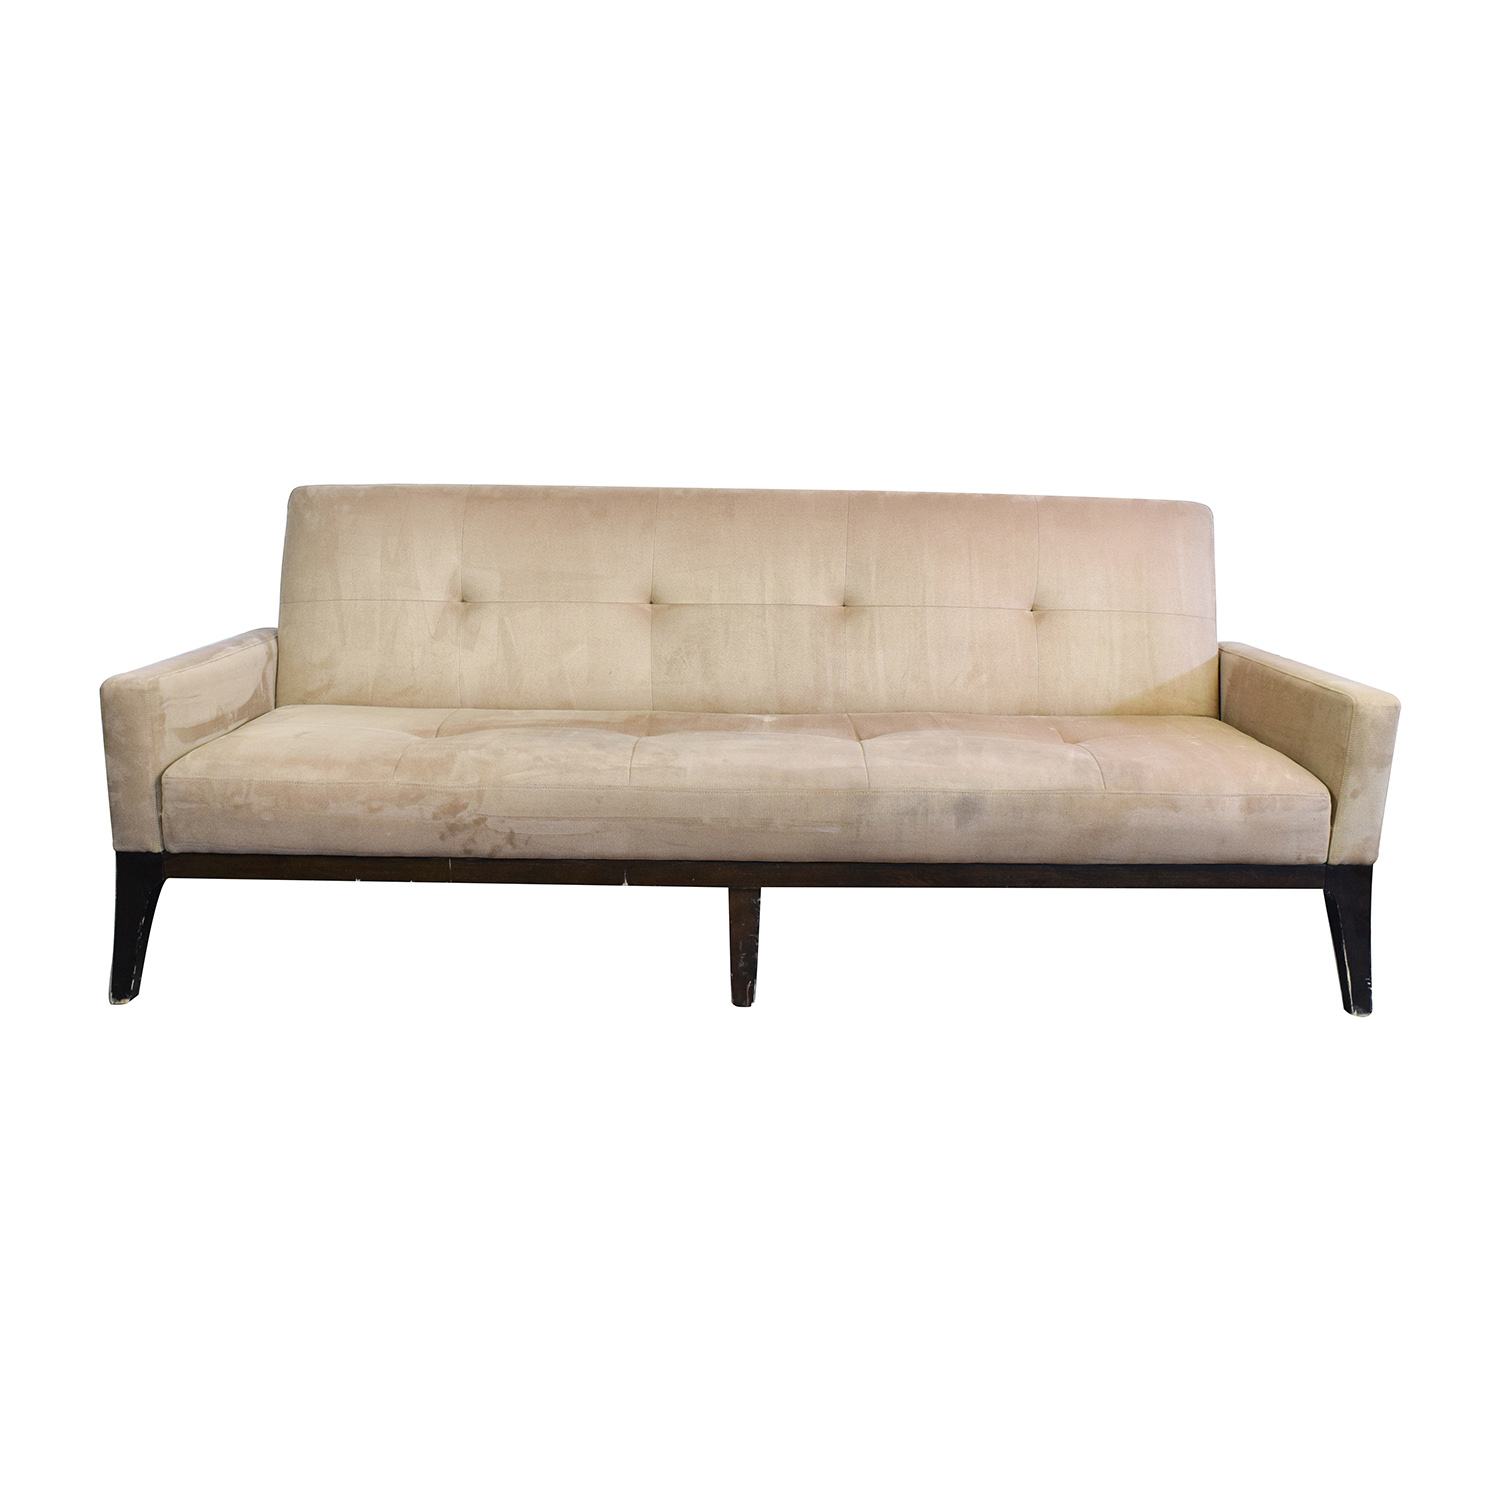 crate and barrel leather sofa bed how to make a mattress more comfortable beige futon furnitures fresh best 25